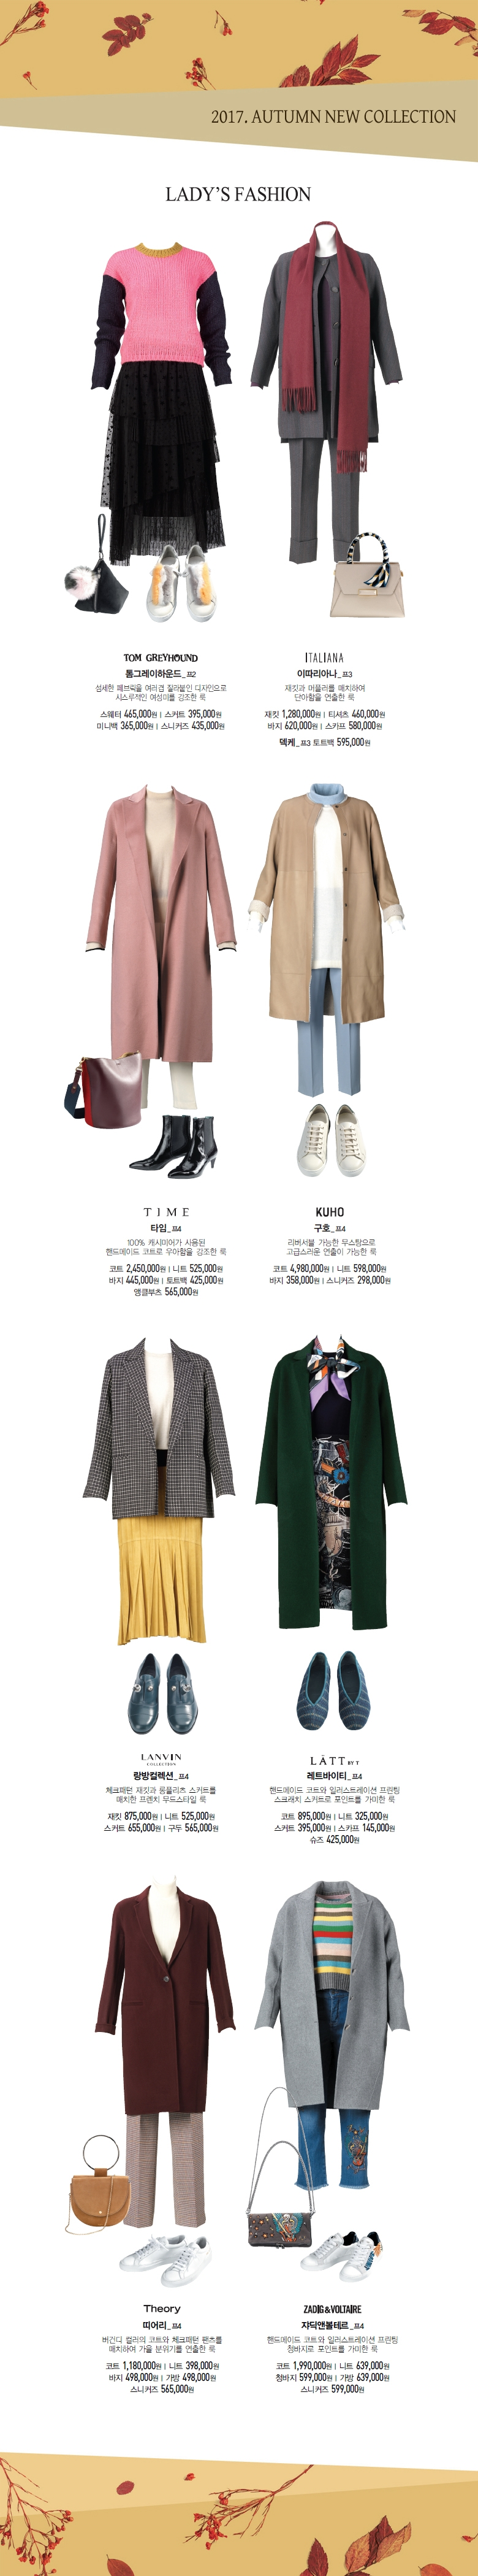 2017. AUTUMN NEW COLLECTION